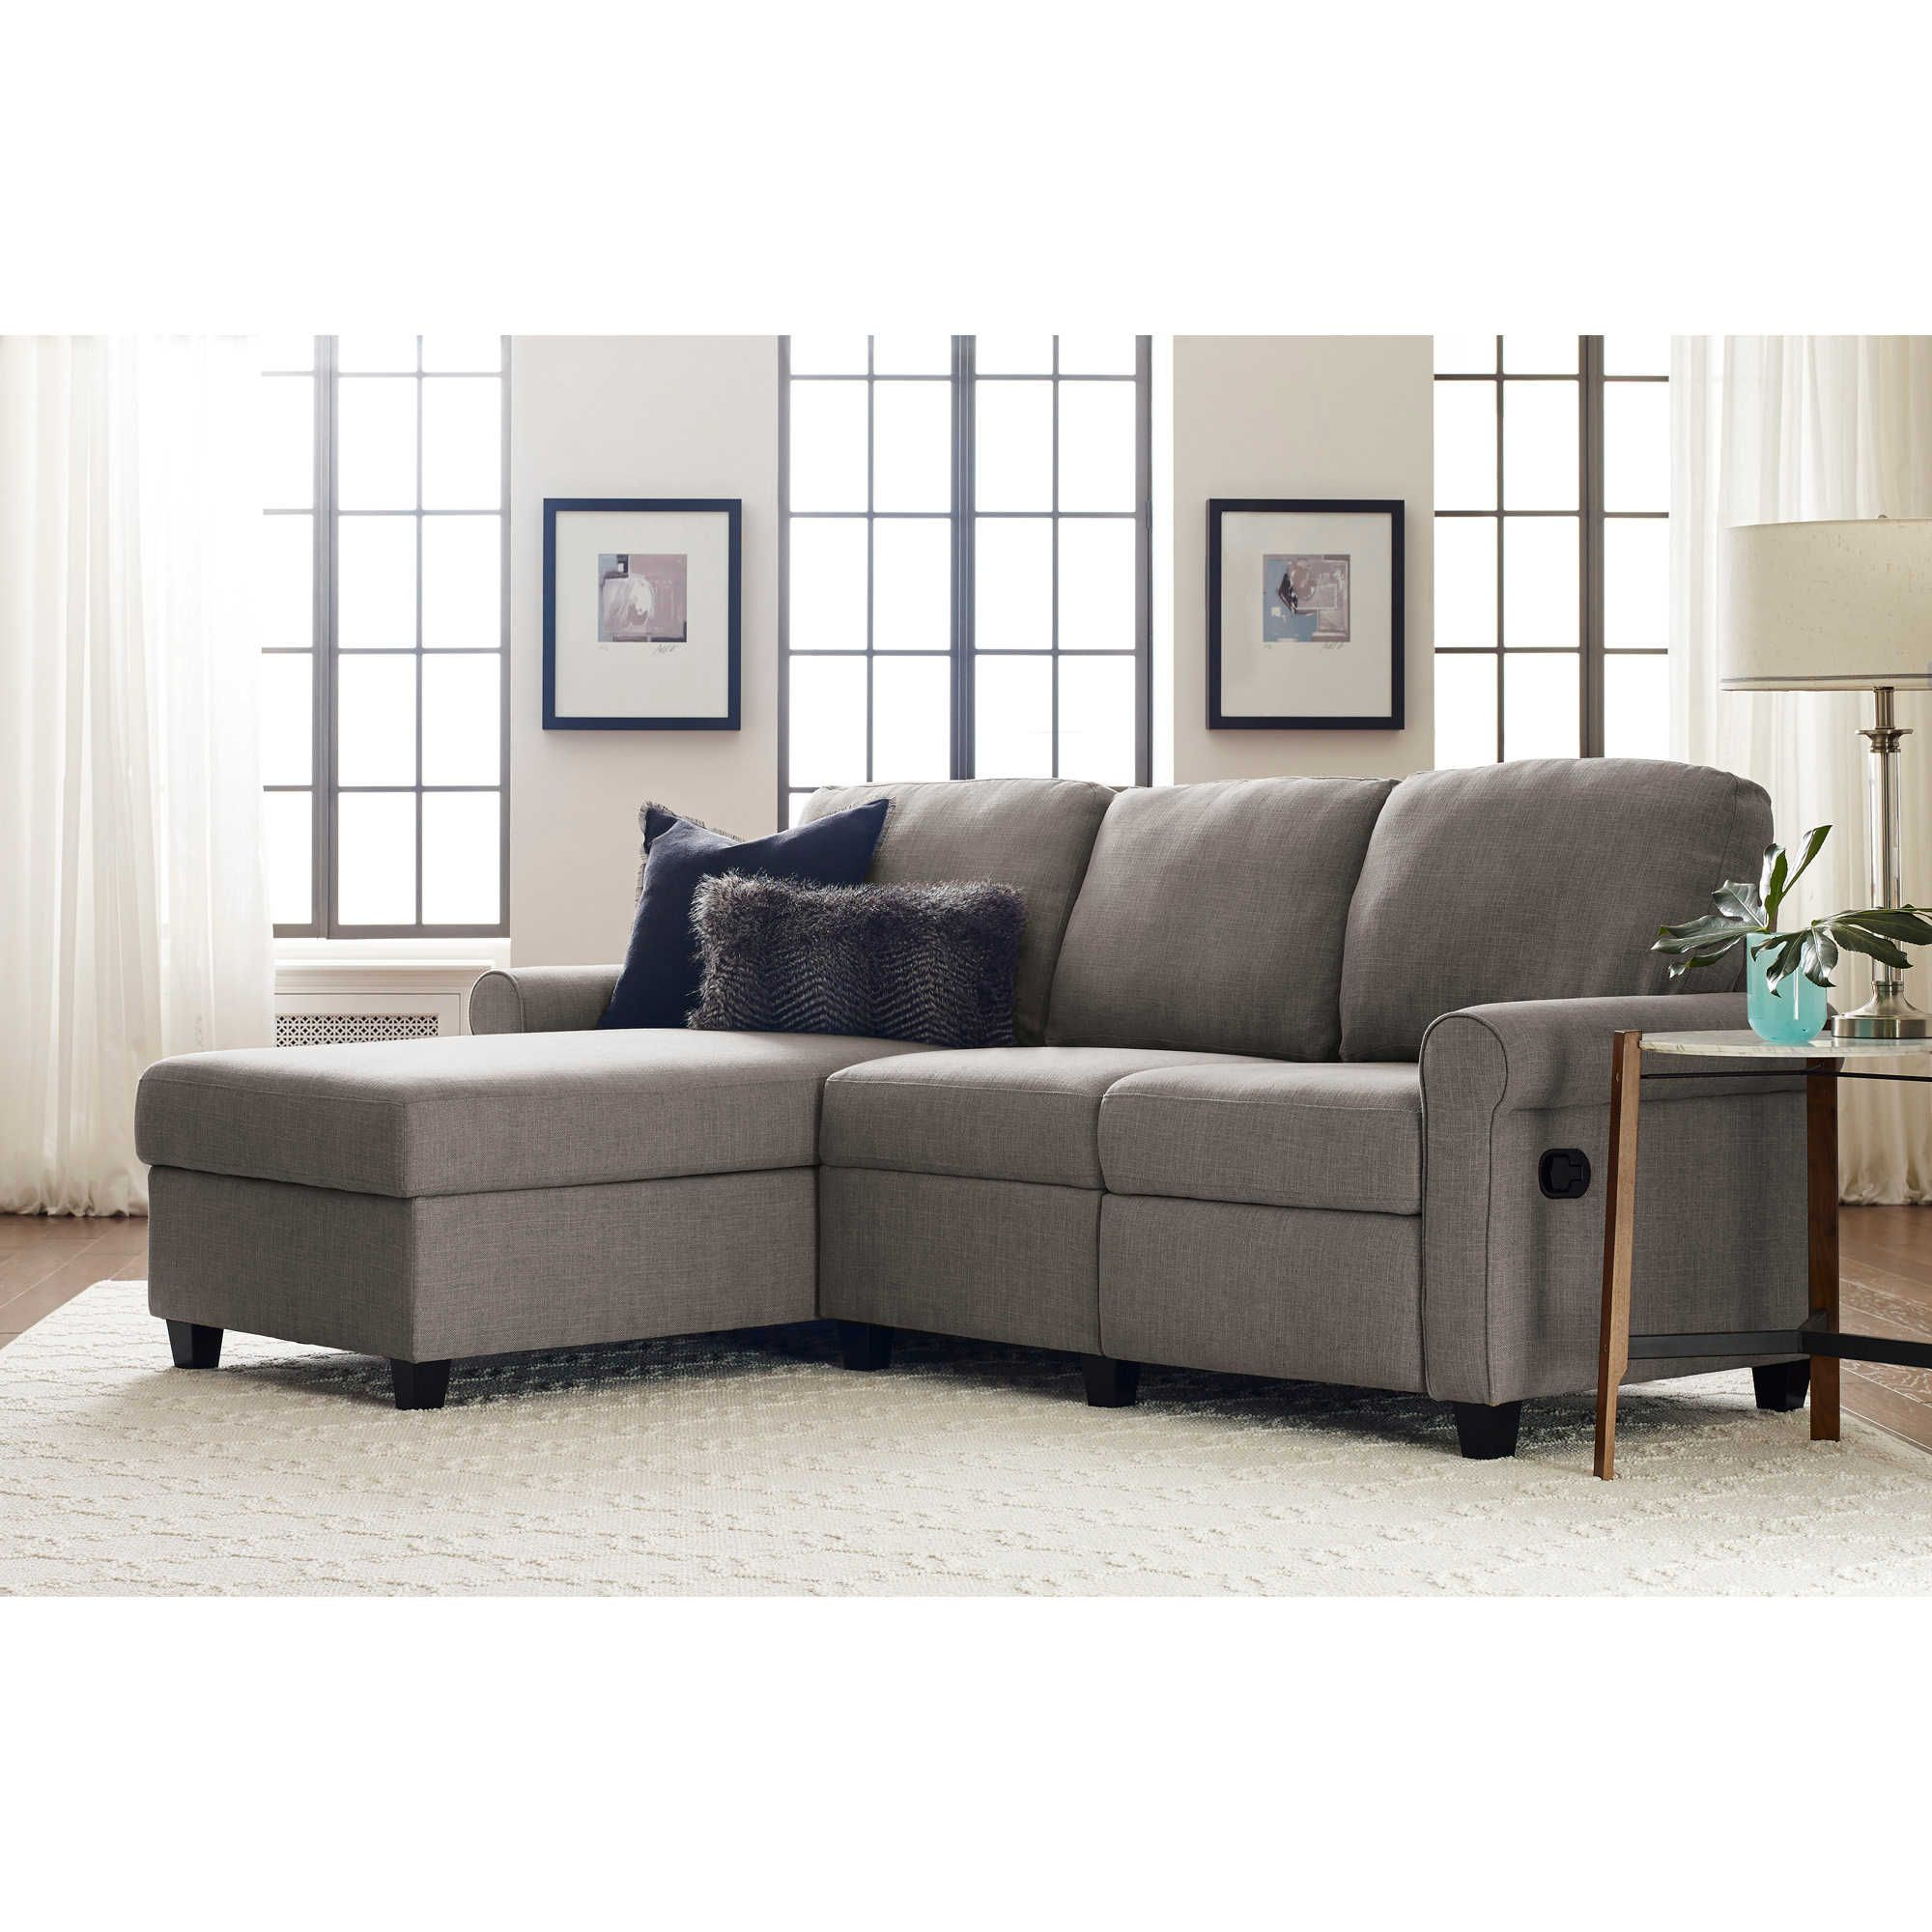 Serta® Copenhagen Reclining Sectional Sofa With Storage For Copenhagen Reclining Sectional Sofas With Right Storage Chaise (View 1 of 15)